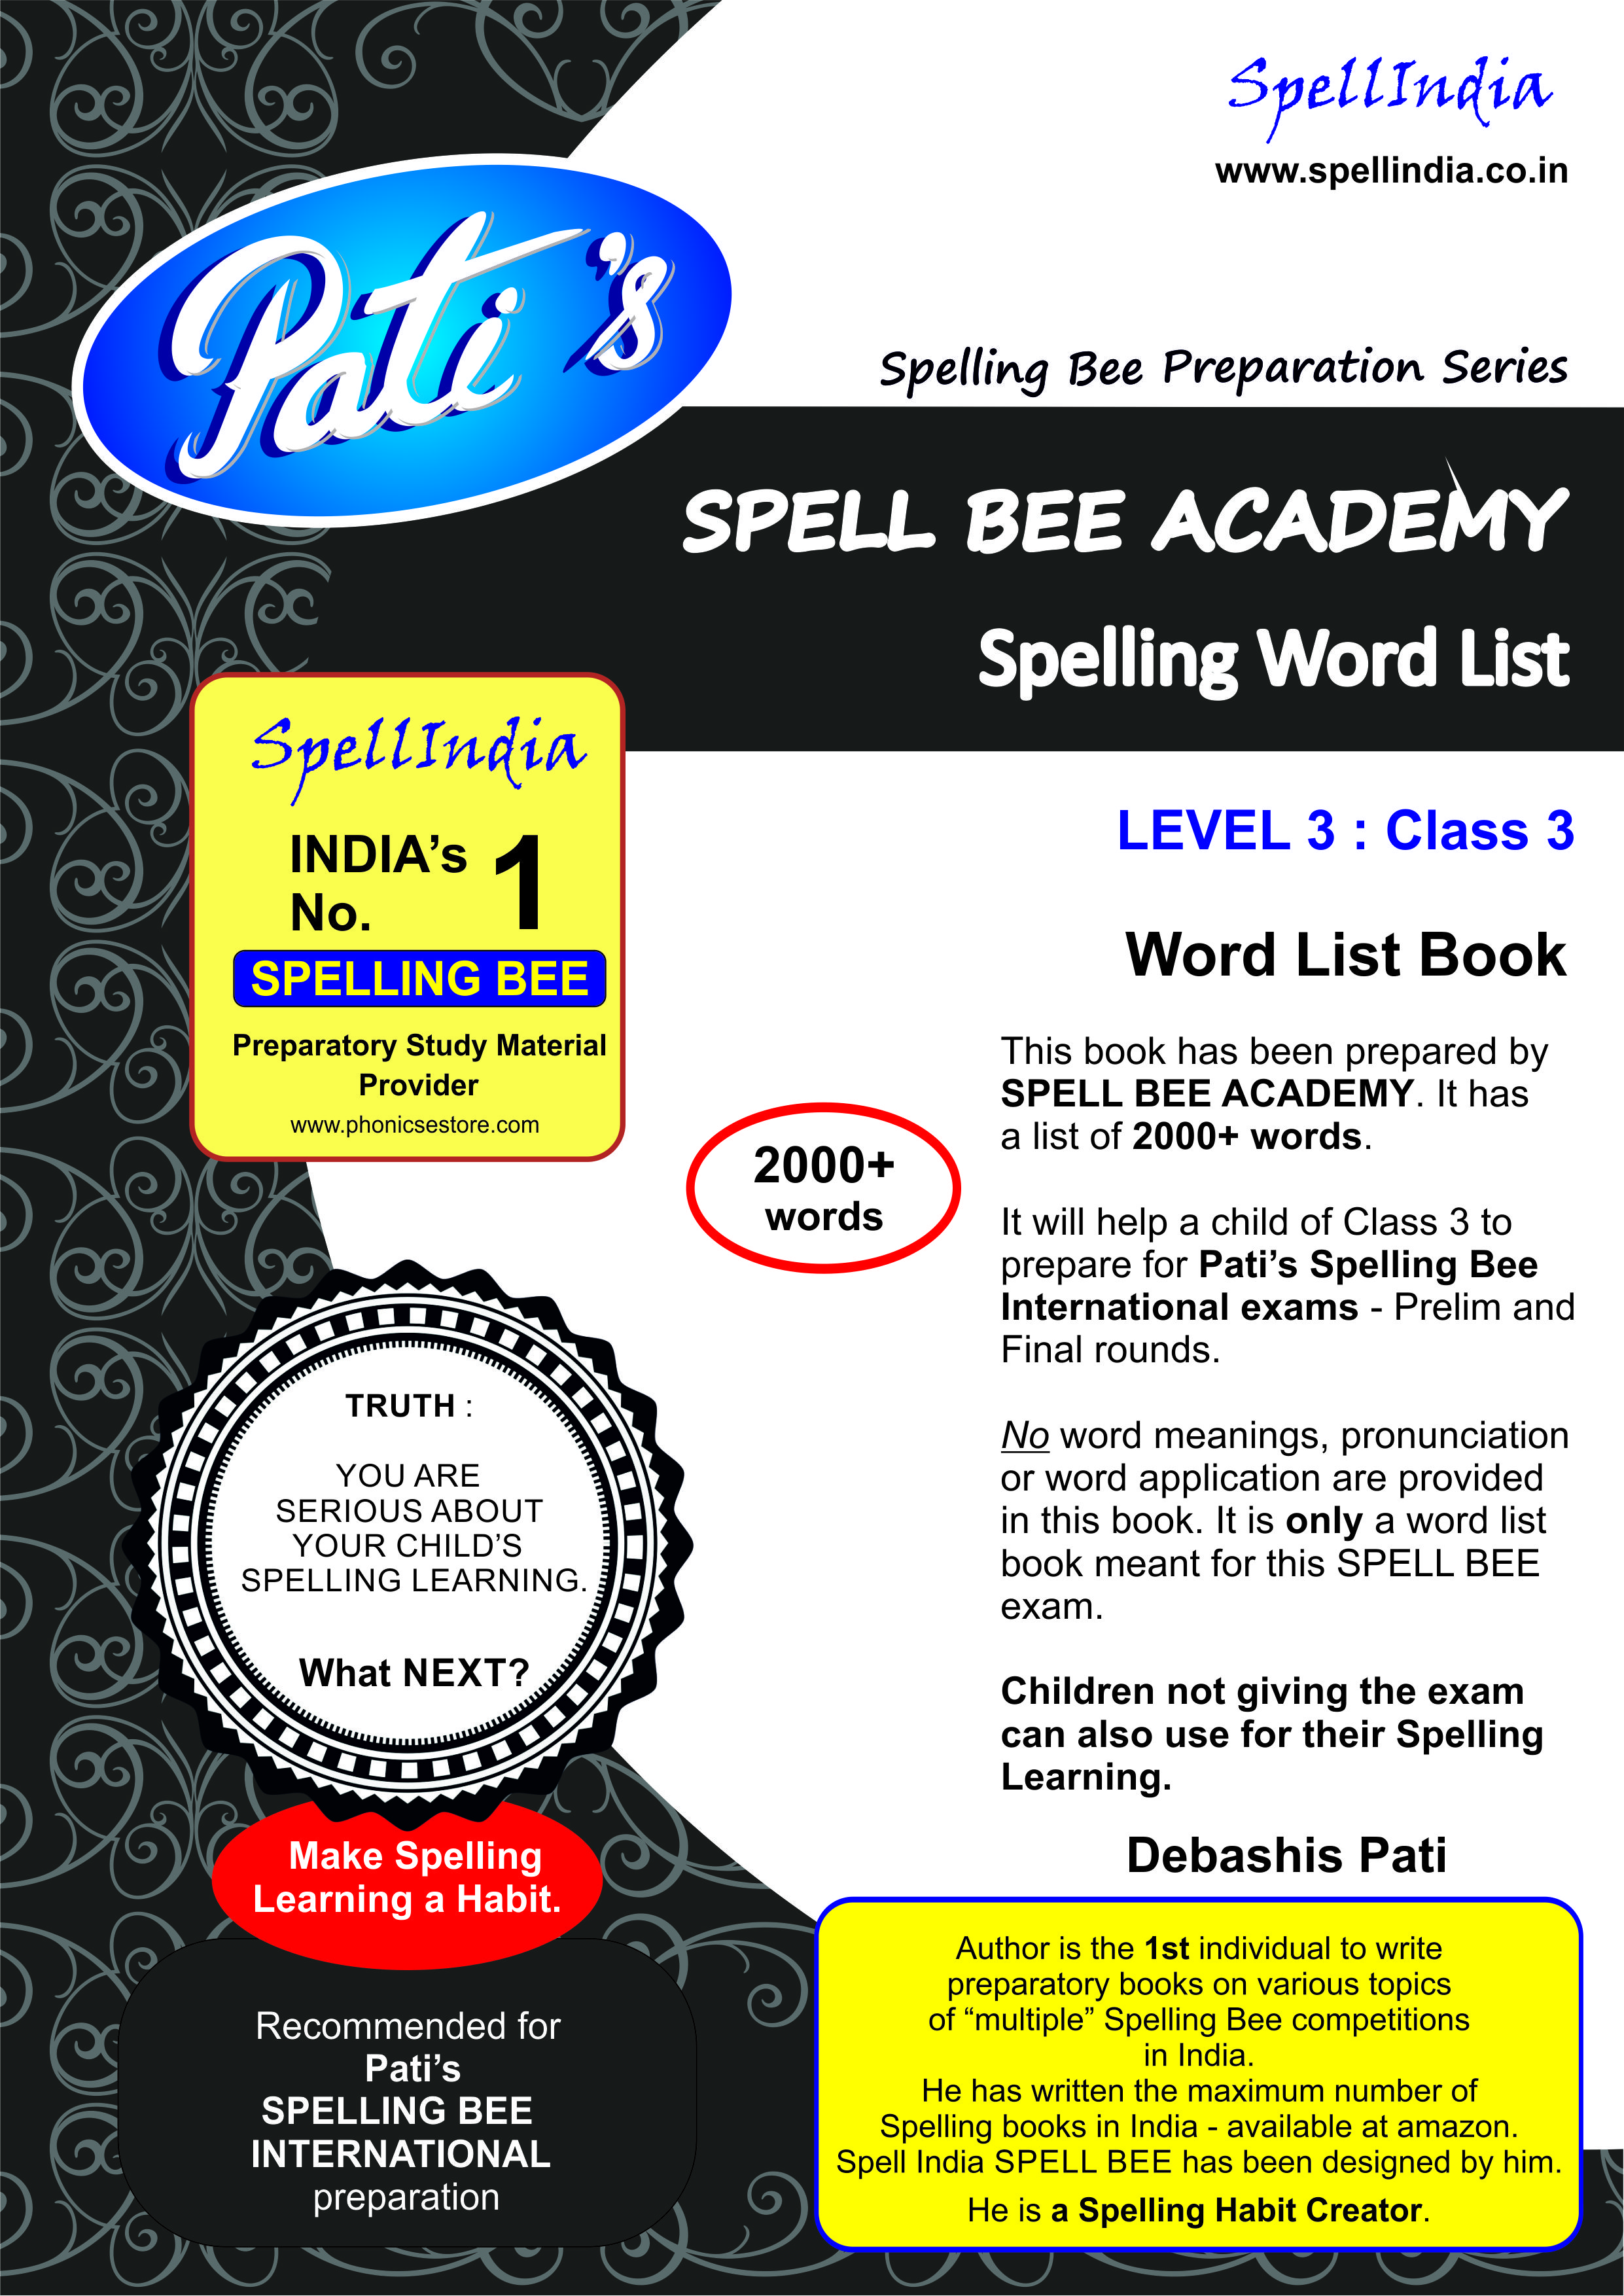 SPELLING WORD LIST FOR CLASS 3